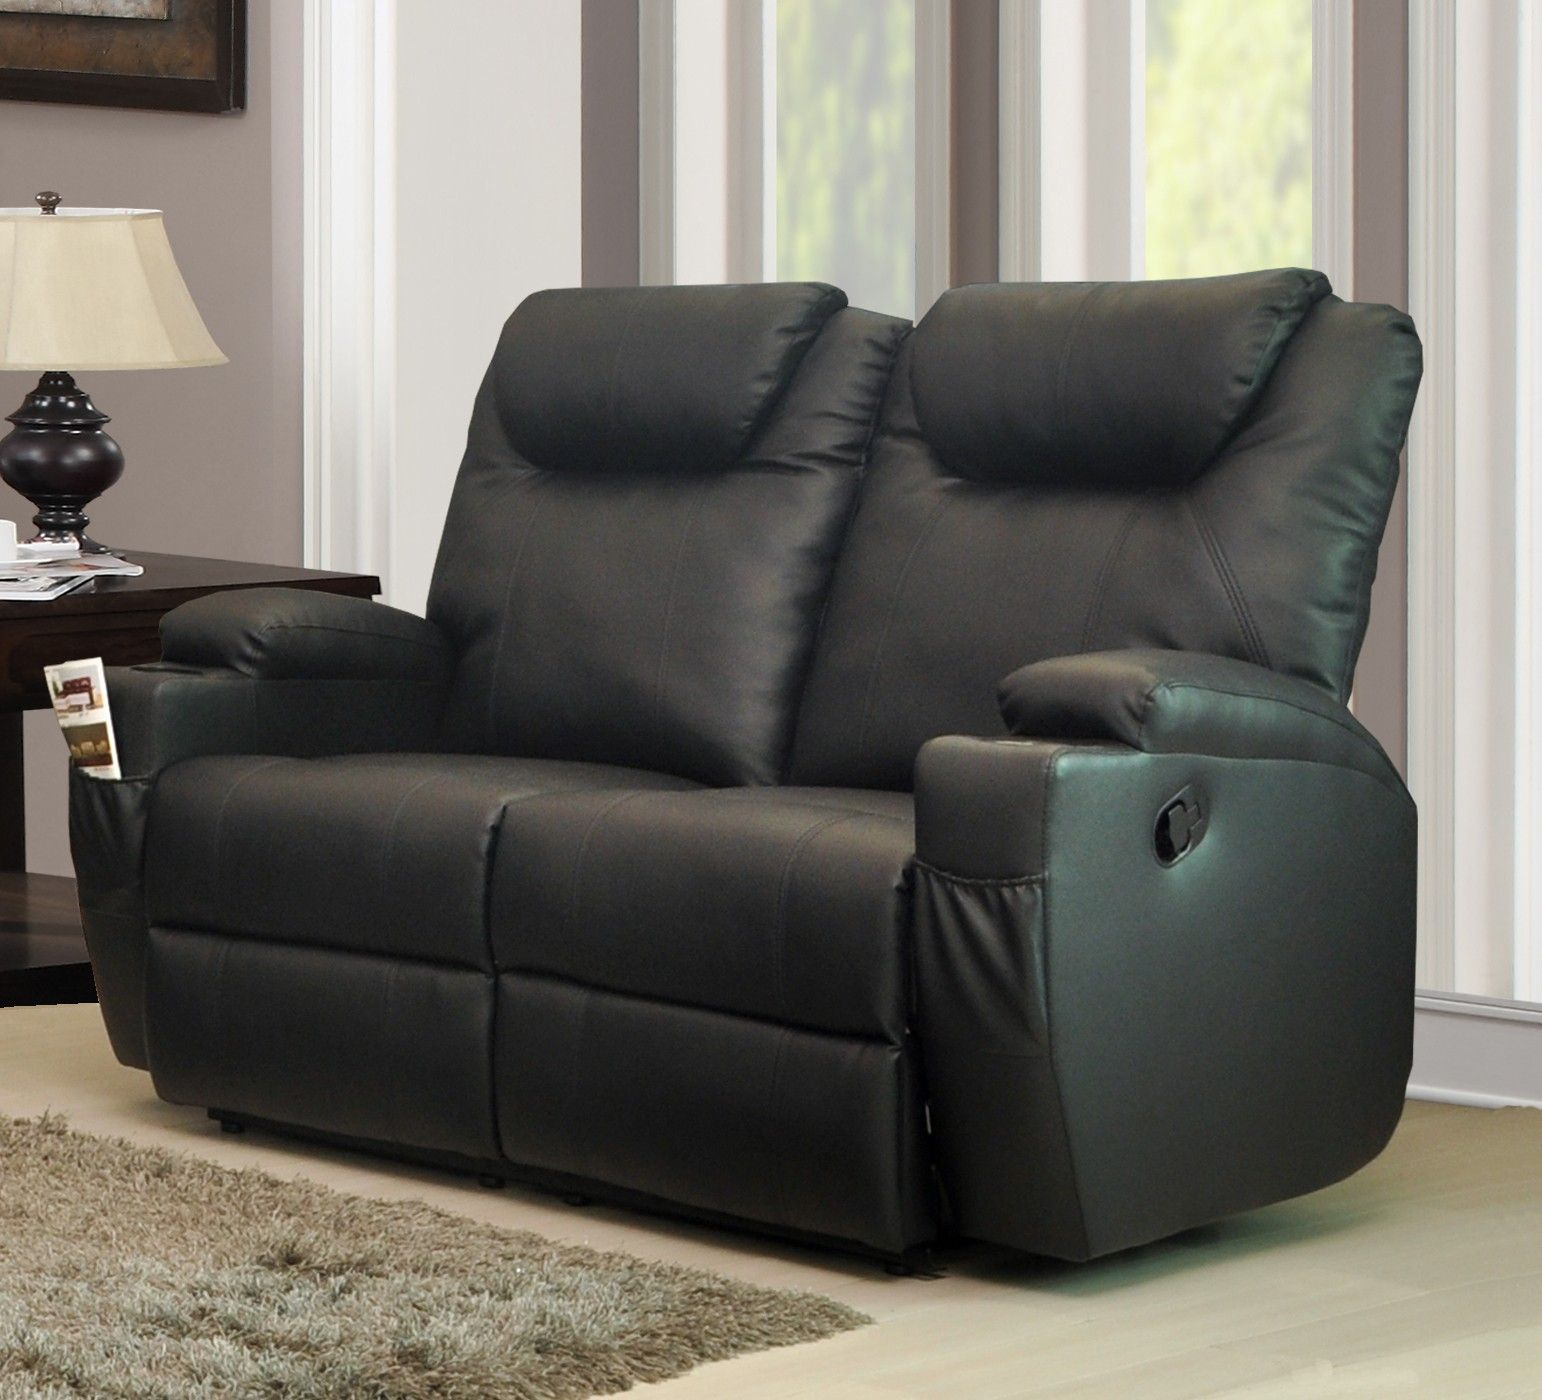 full leather recliner sofa singapore 2 piece slipcover blue furniture living room black grain reclining